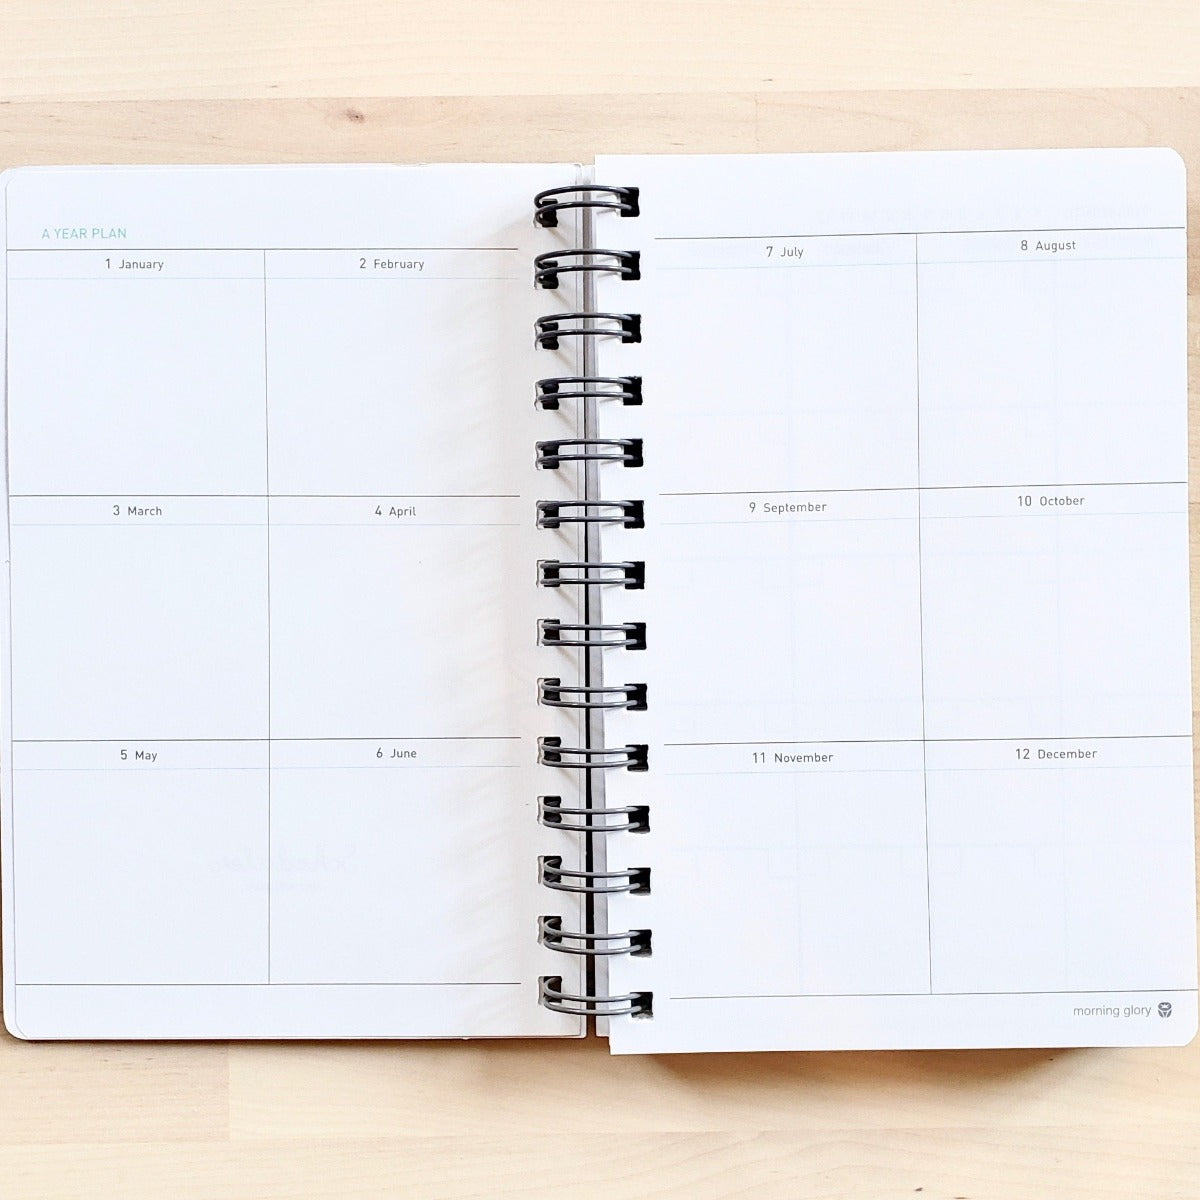 Morning Glory spiral bound hardcover scheduler year planning pages